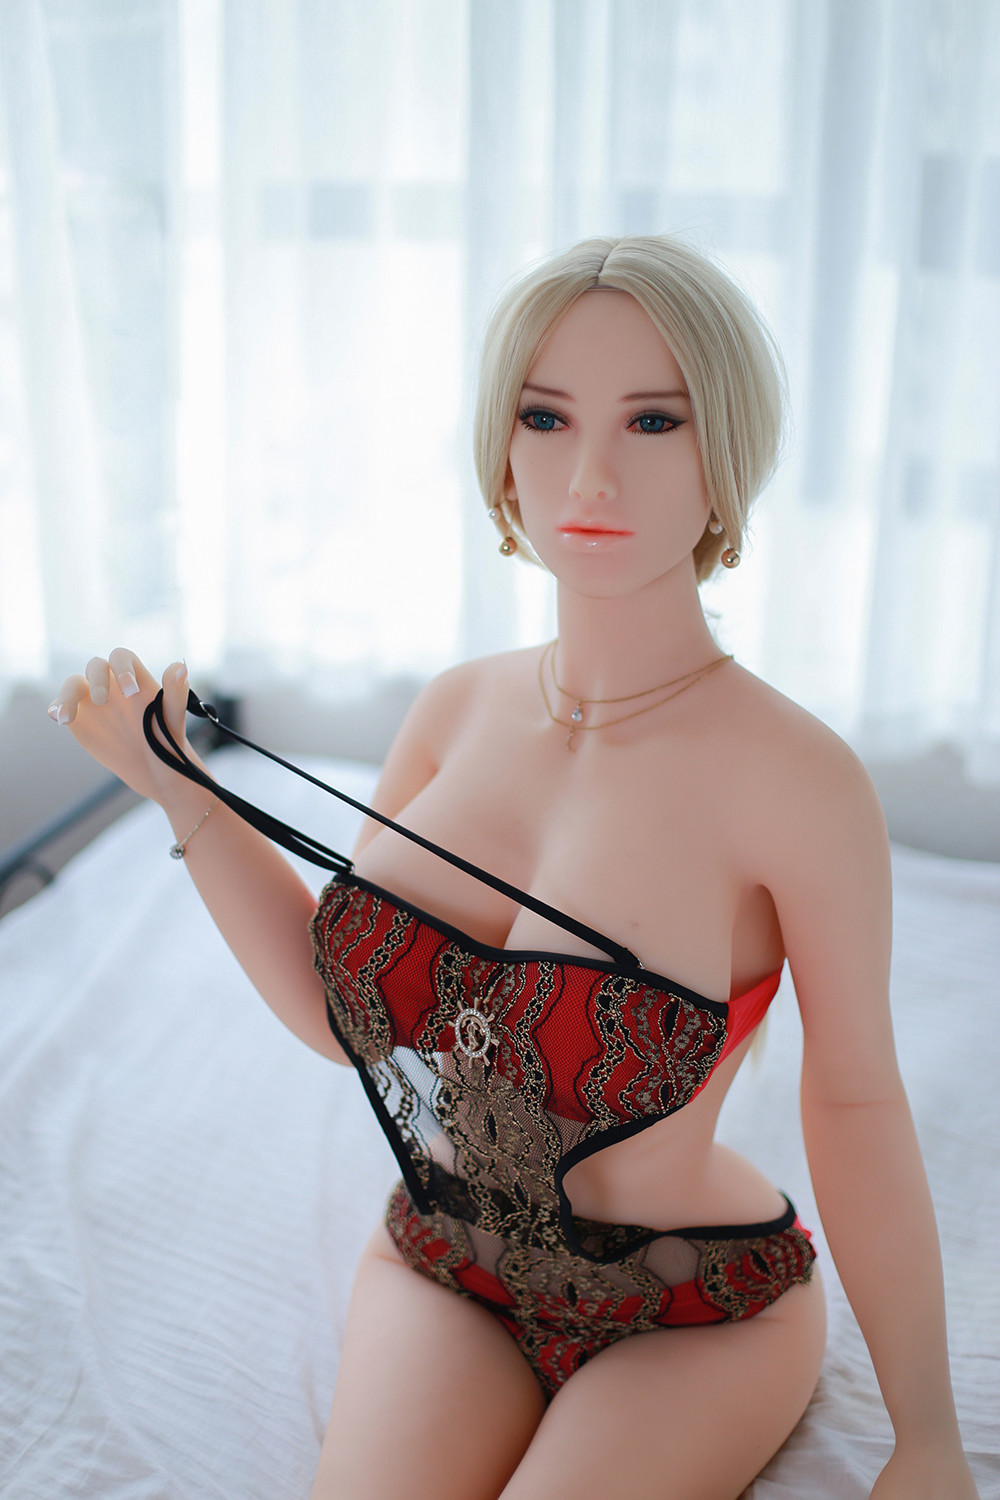 Mysterious Girl Heatable Blonde Realistic Sex Doll